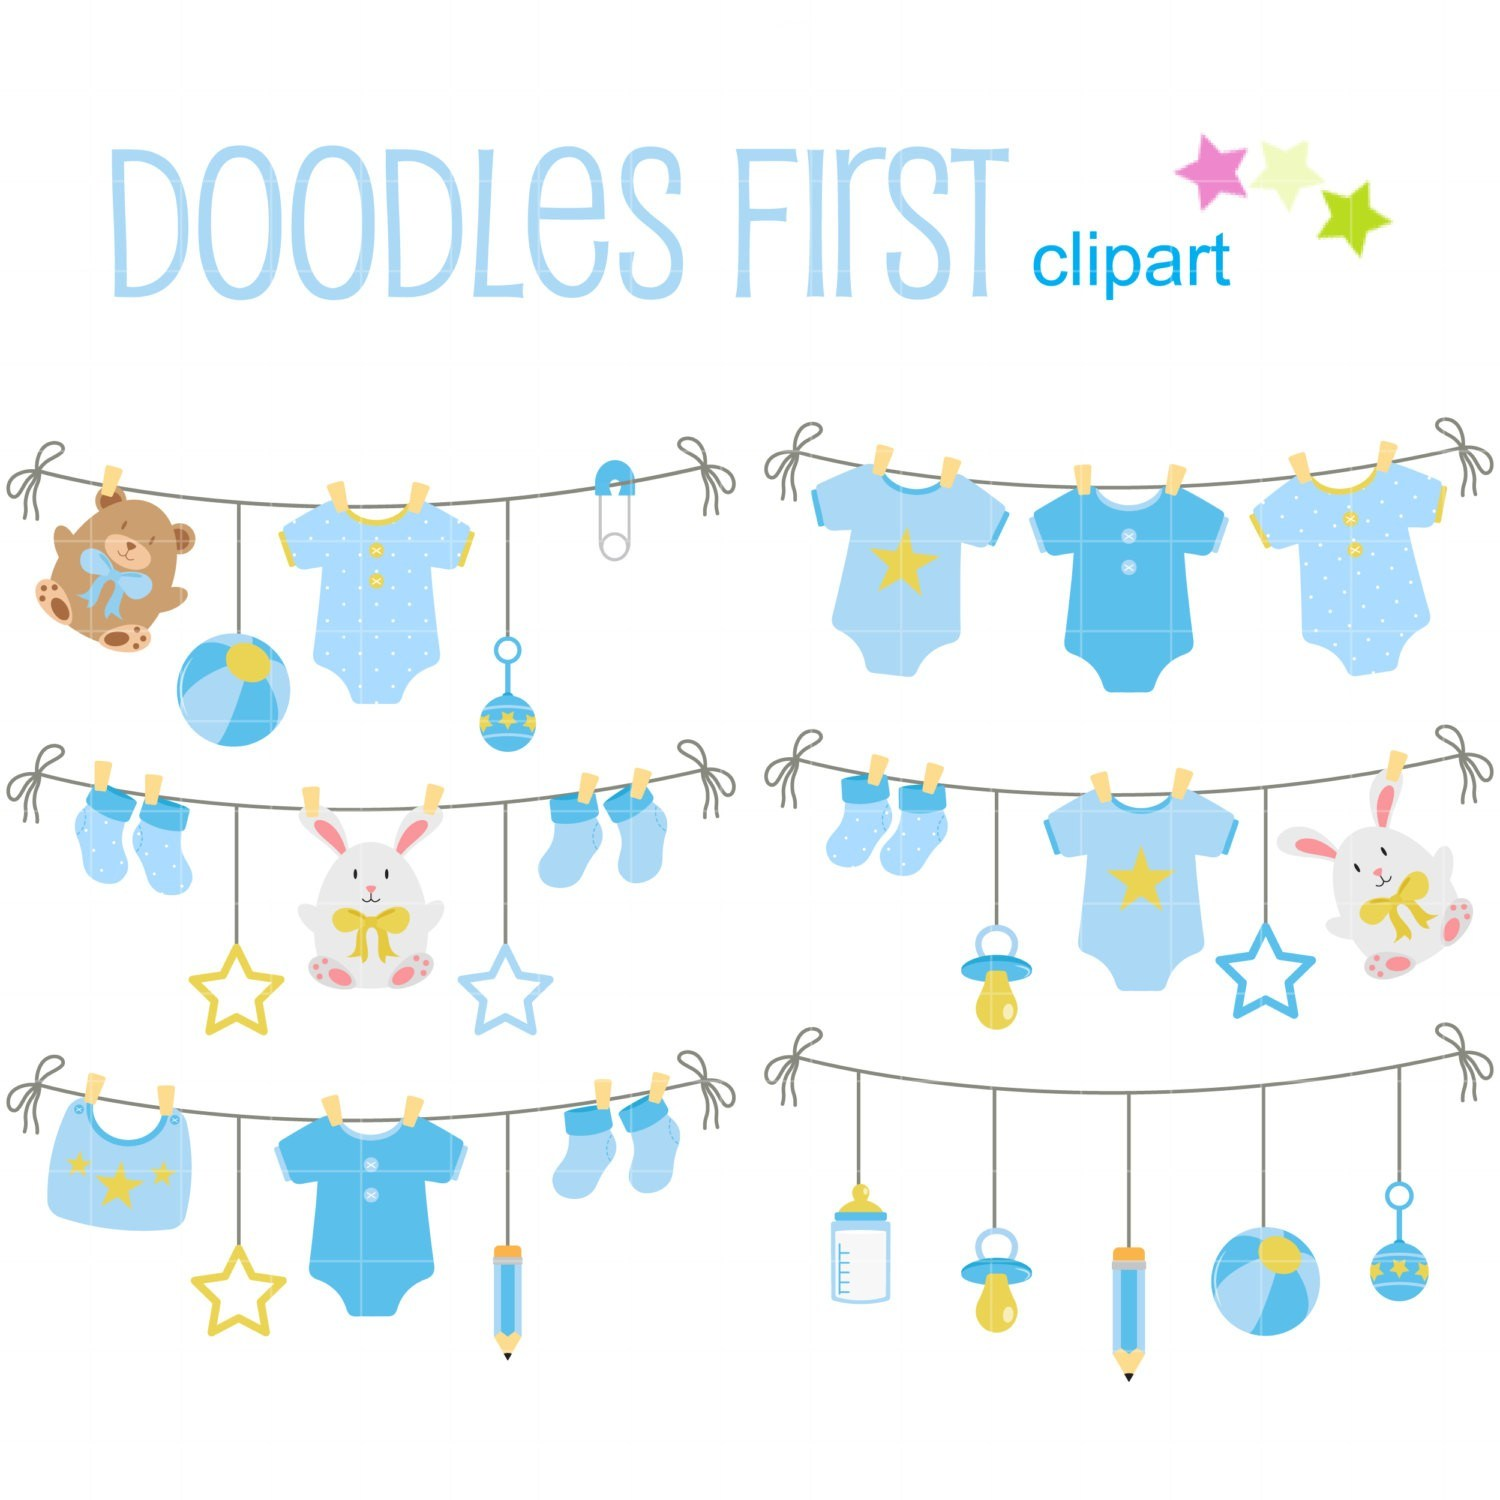 Free baby clothesline clipart 6 » Clipart Portal.